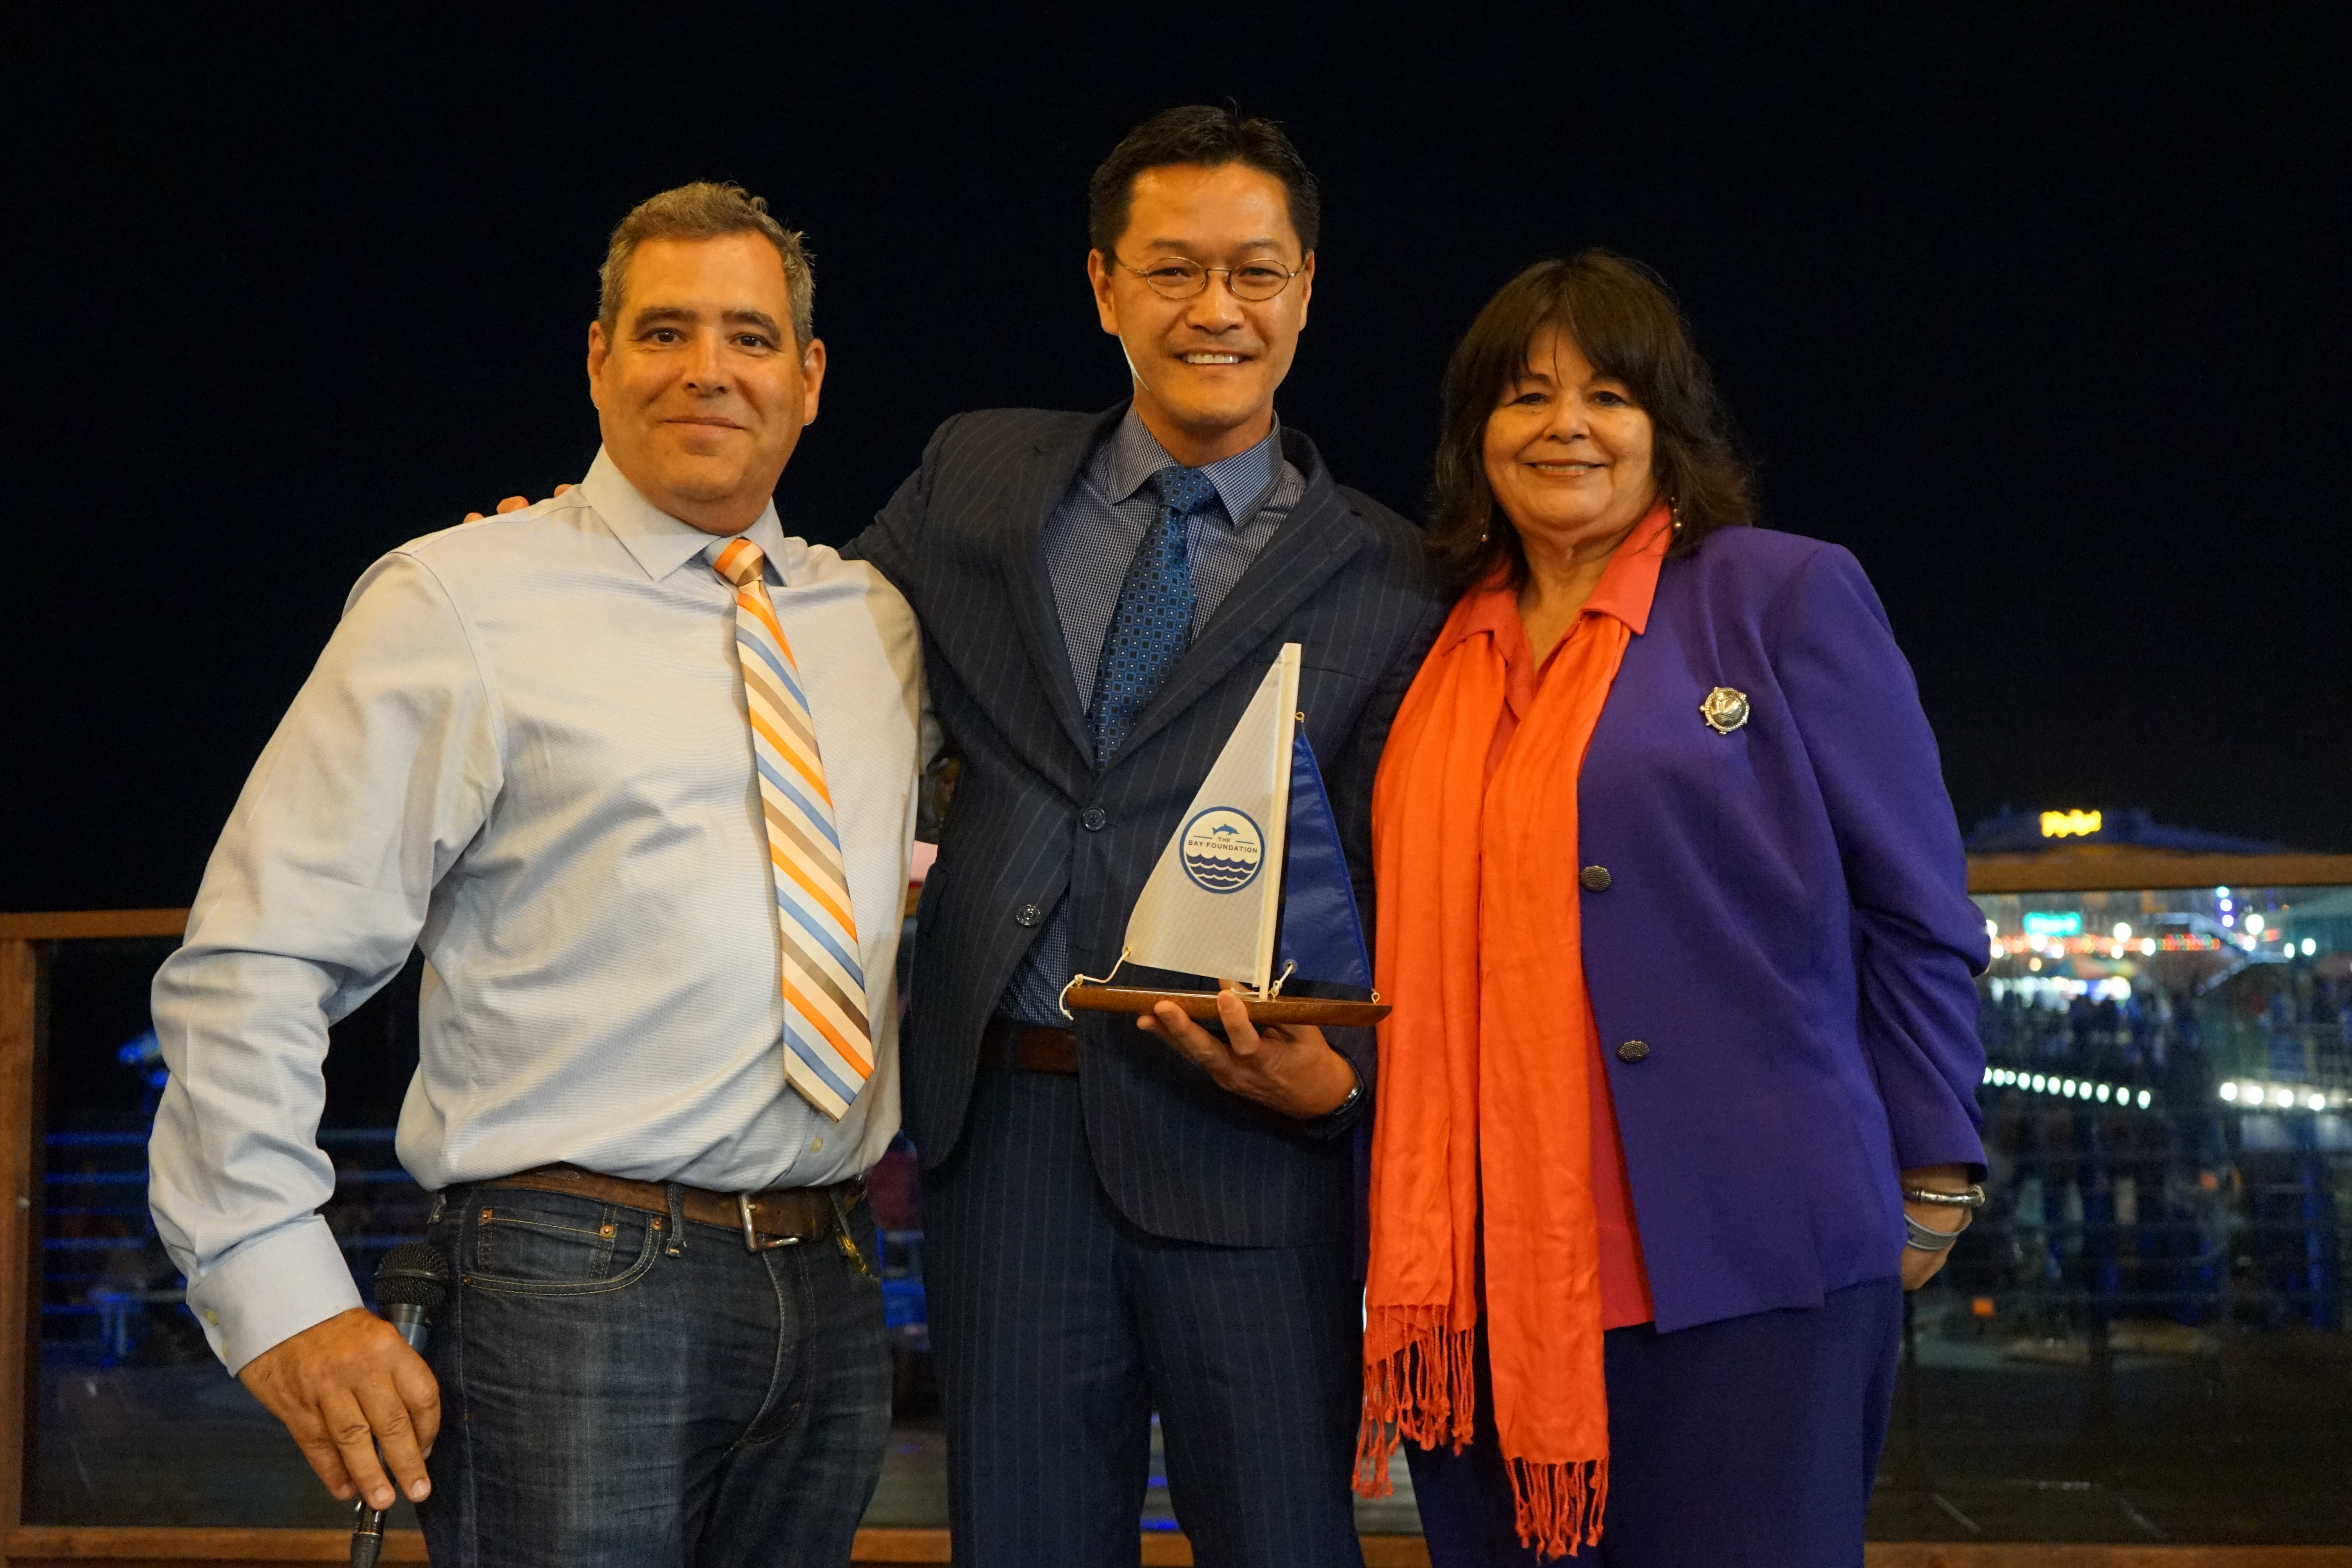 TBF Director Tom Ford, Honoree LMU Provost Dr. Tom Poon, and Irma Muñoz